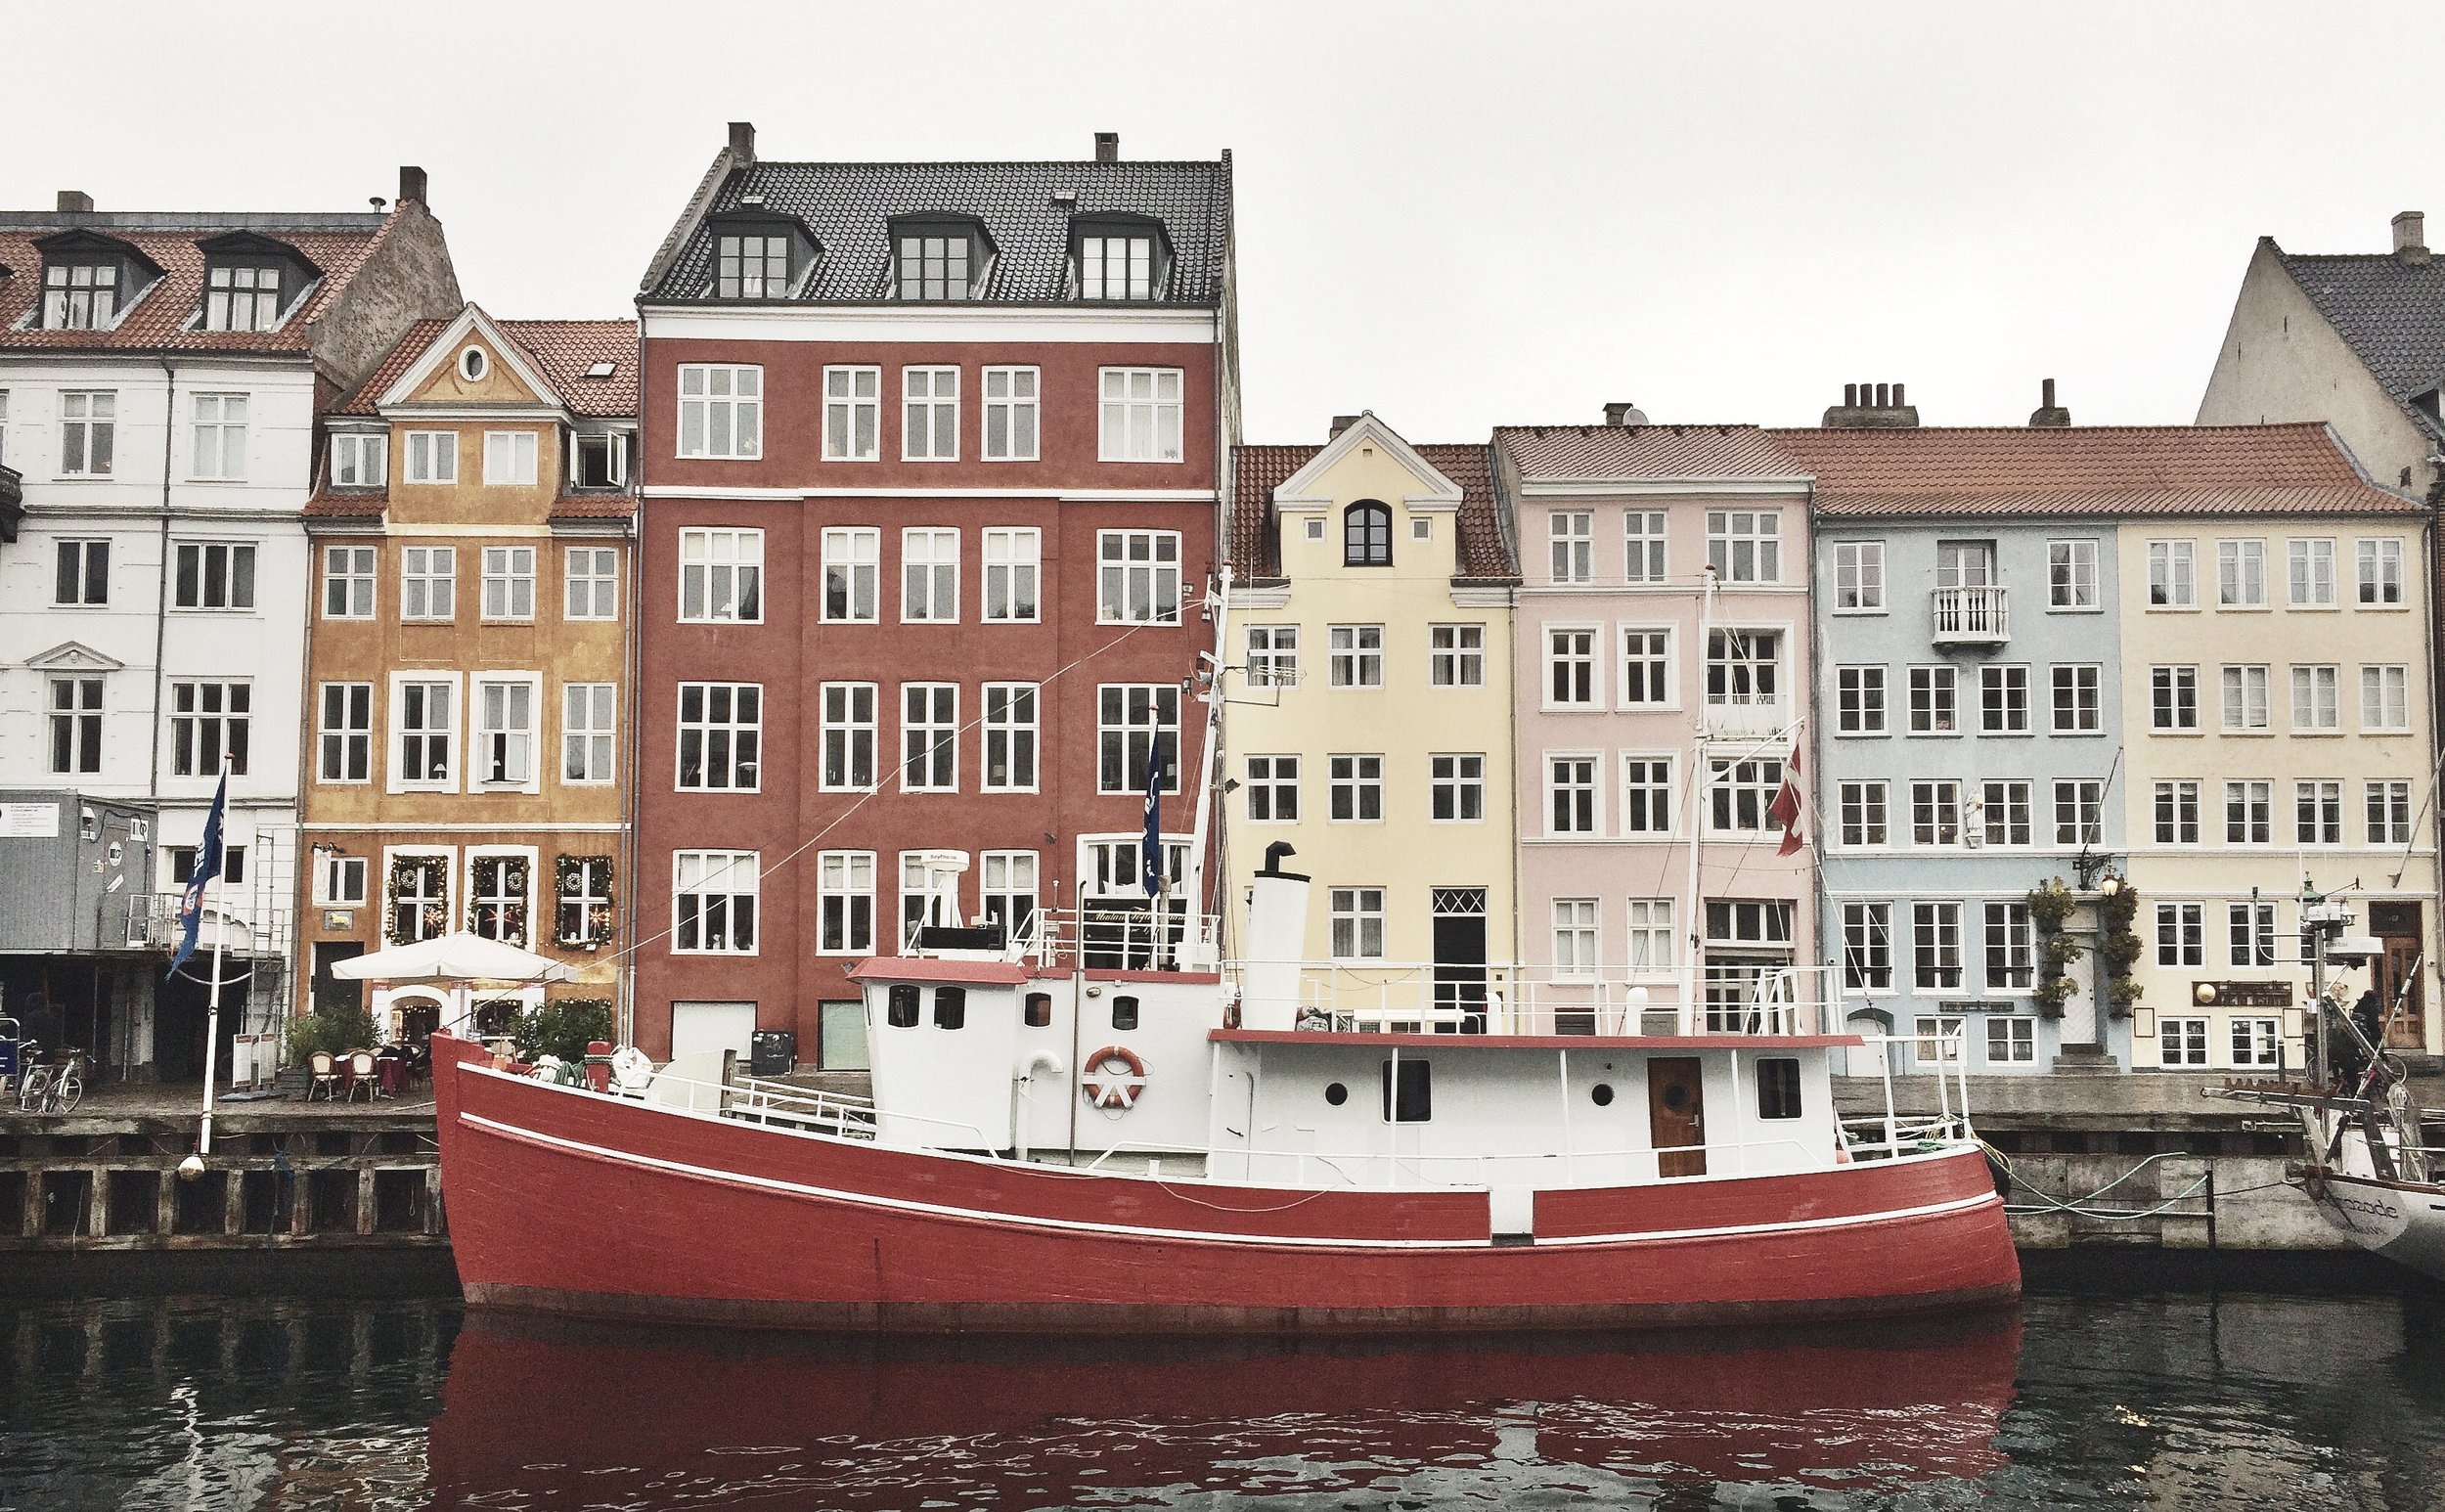 Nyhavn, commute to work, photo by Author